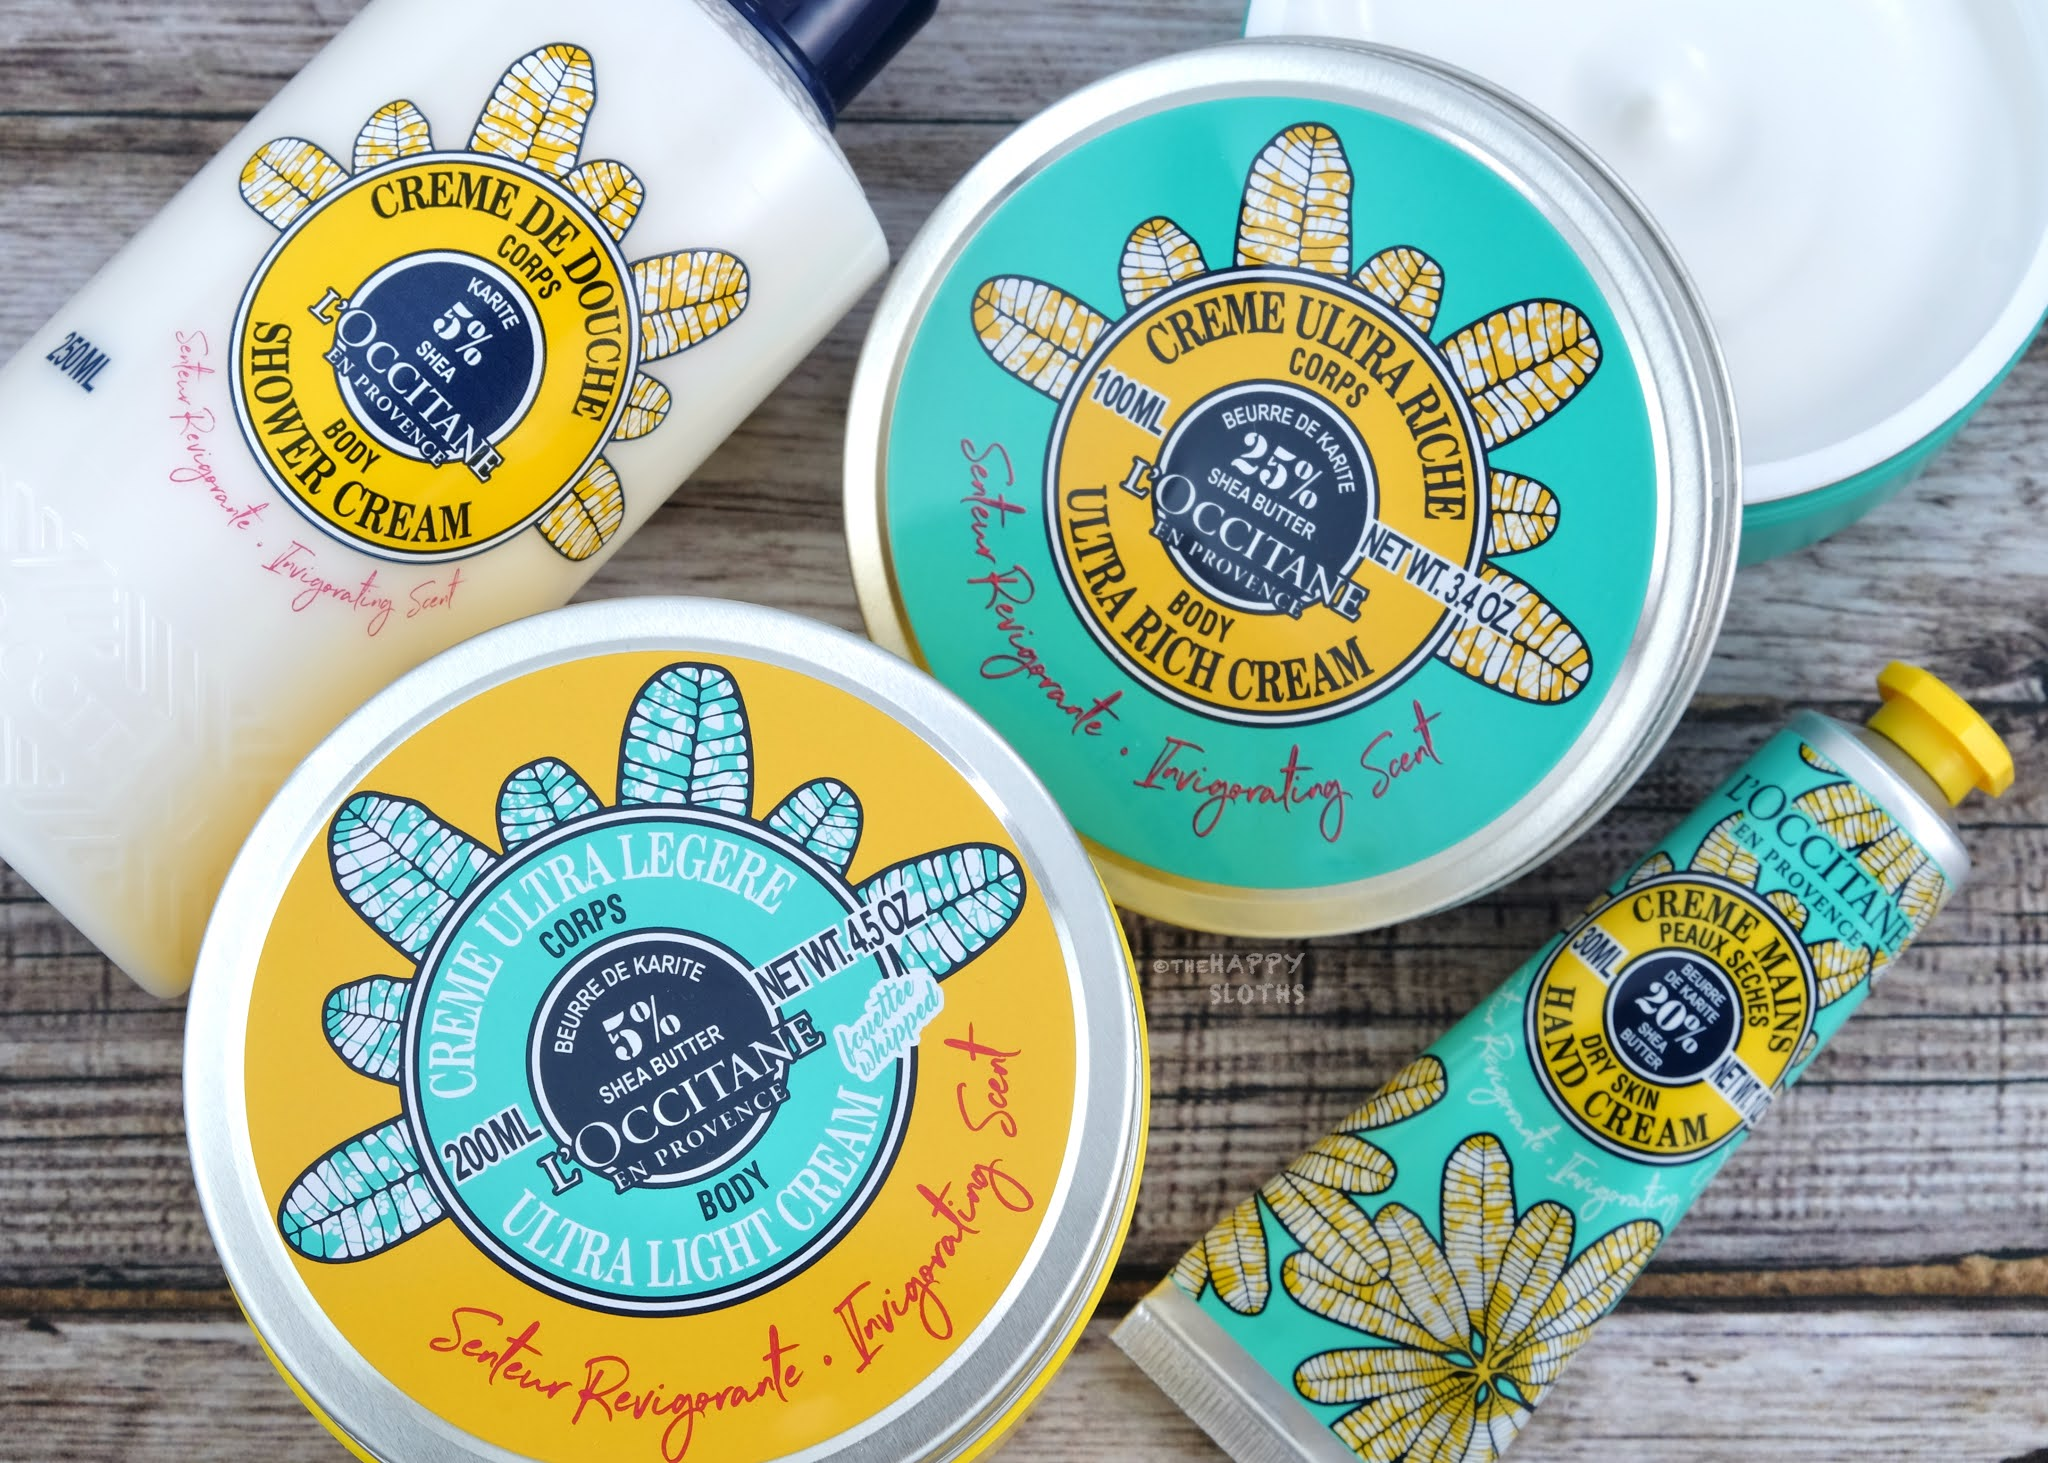 L'Occitane | Limited Edition Invigorating Shea Collection: Review